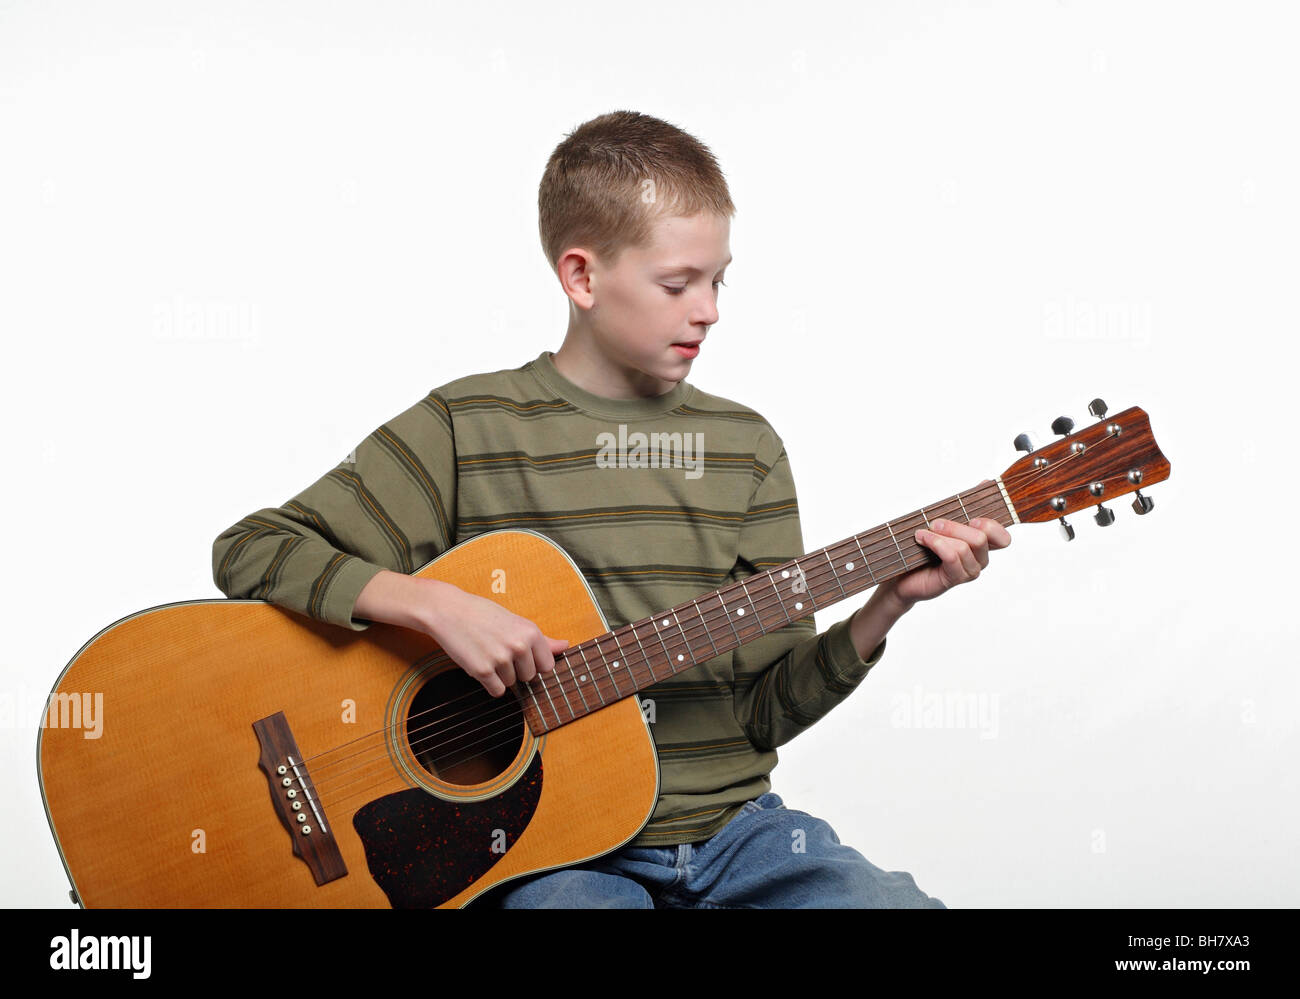 elementary age child sitting and playing a large acoustic guitar - Stock Image